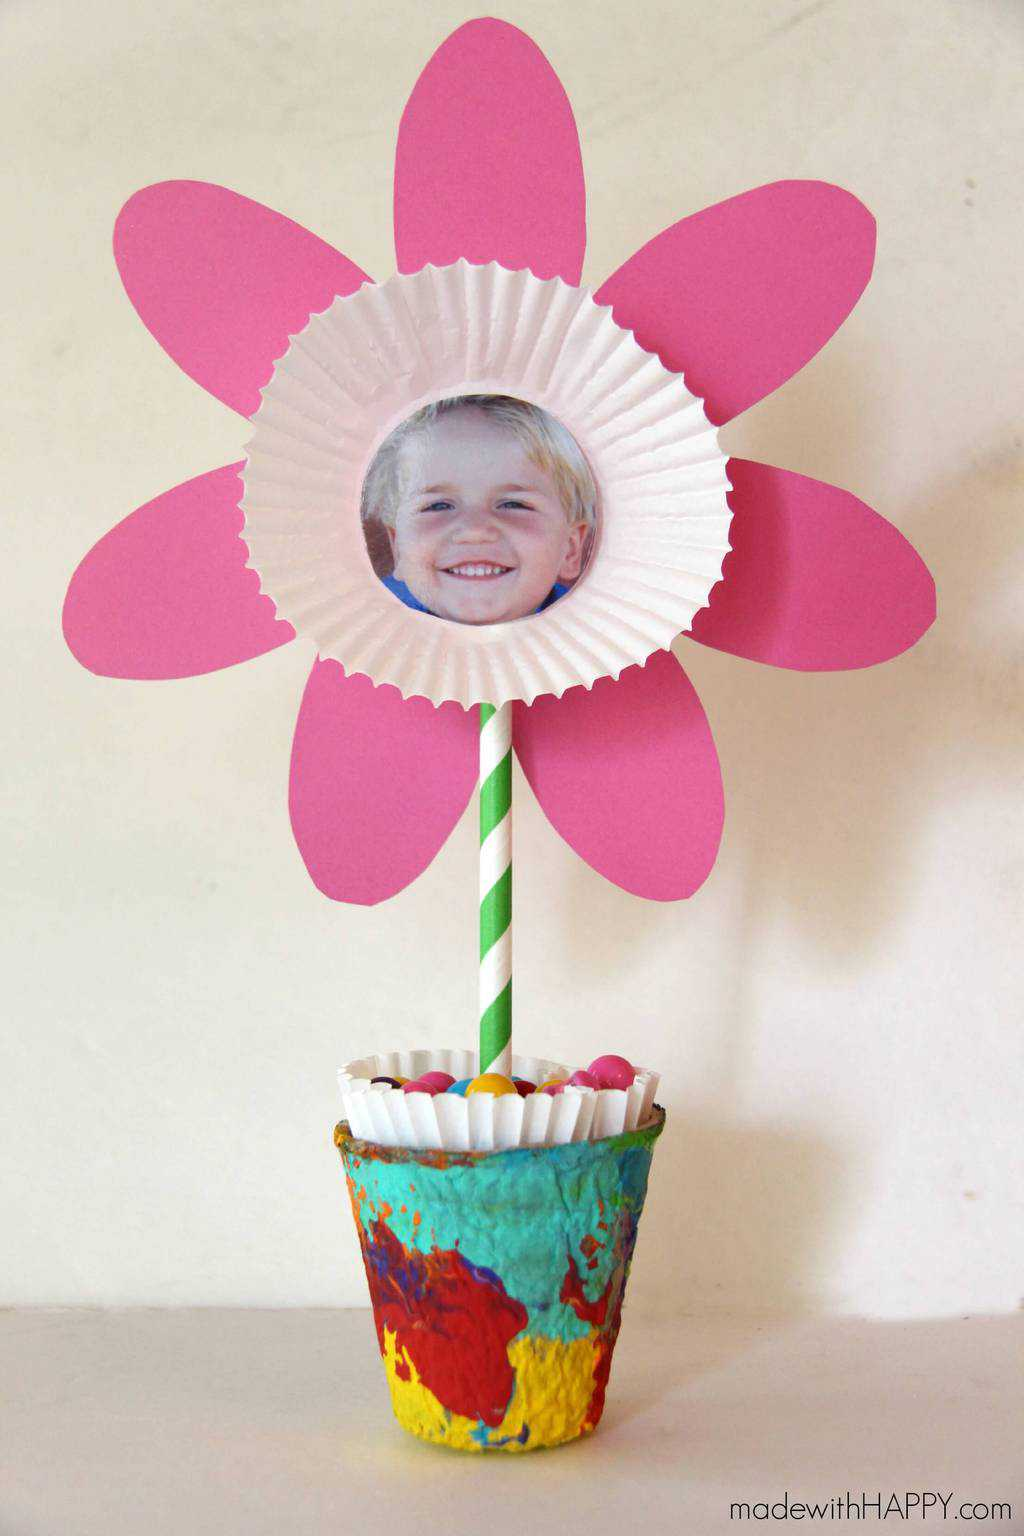 Flower Craft For Kids With Free Printable Flower Template